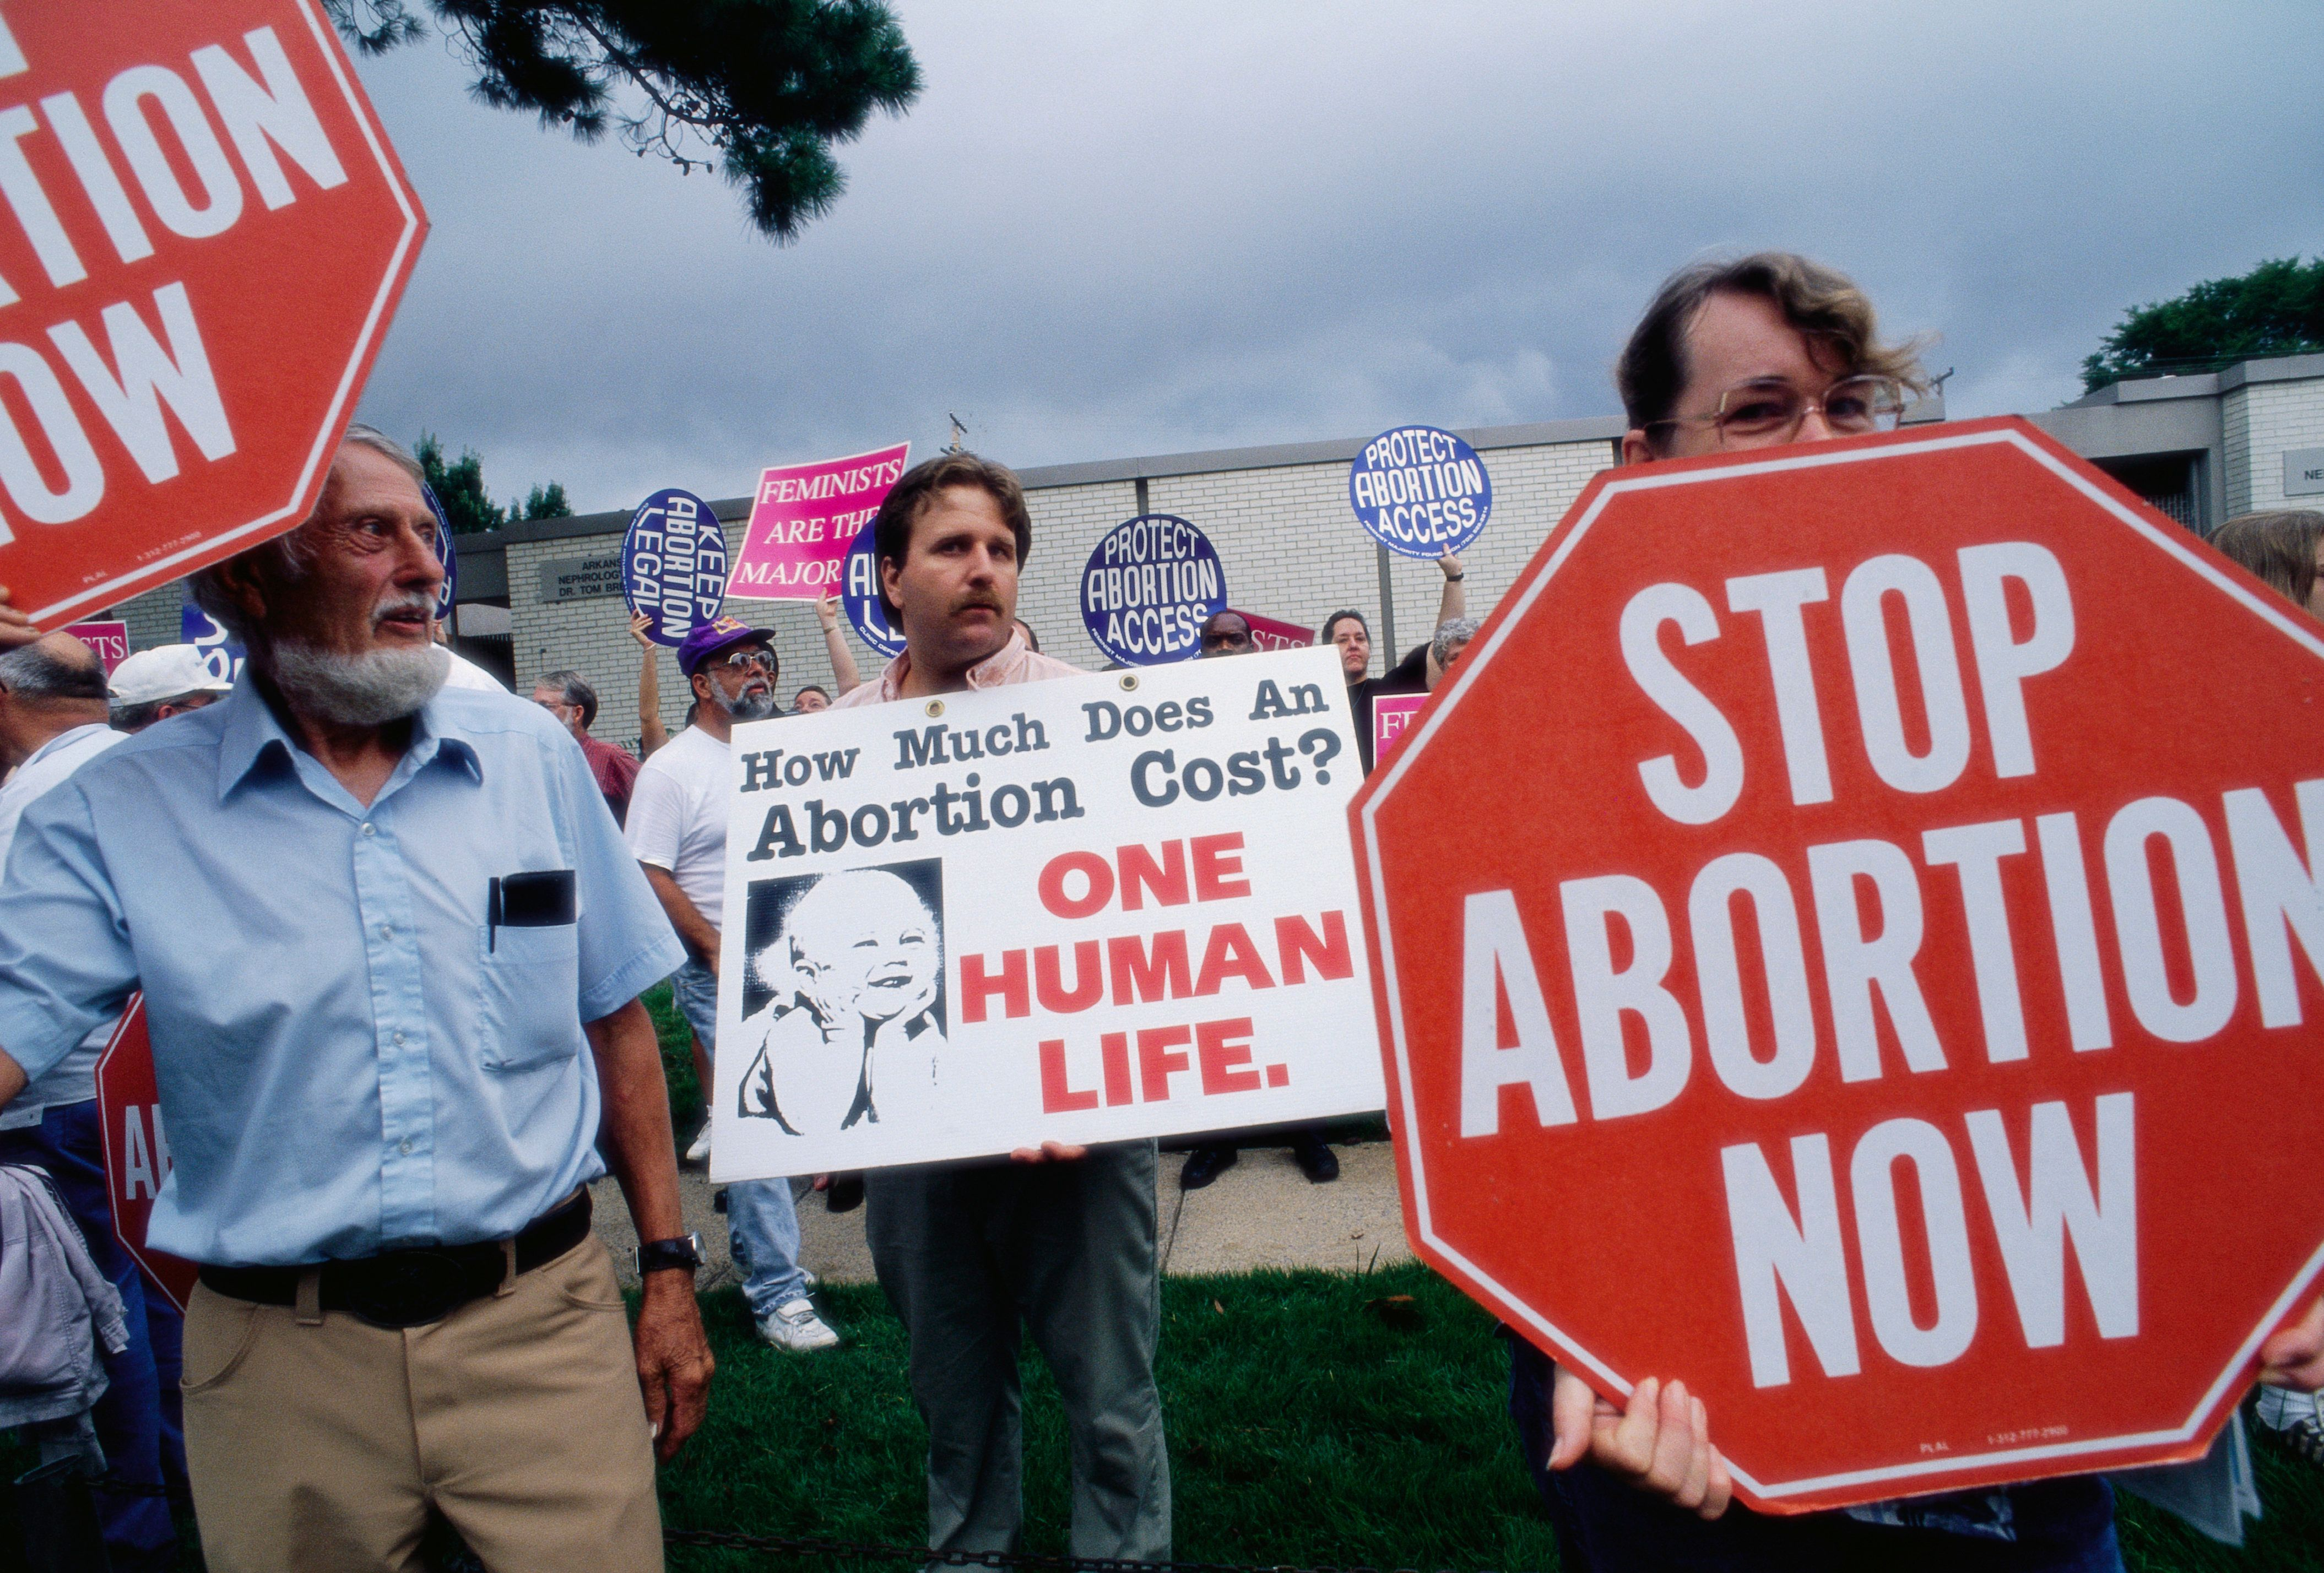 Members of the extreme anti-abortion groups Operation Rescue protest outside a clinic in Little Rock.